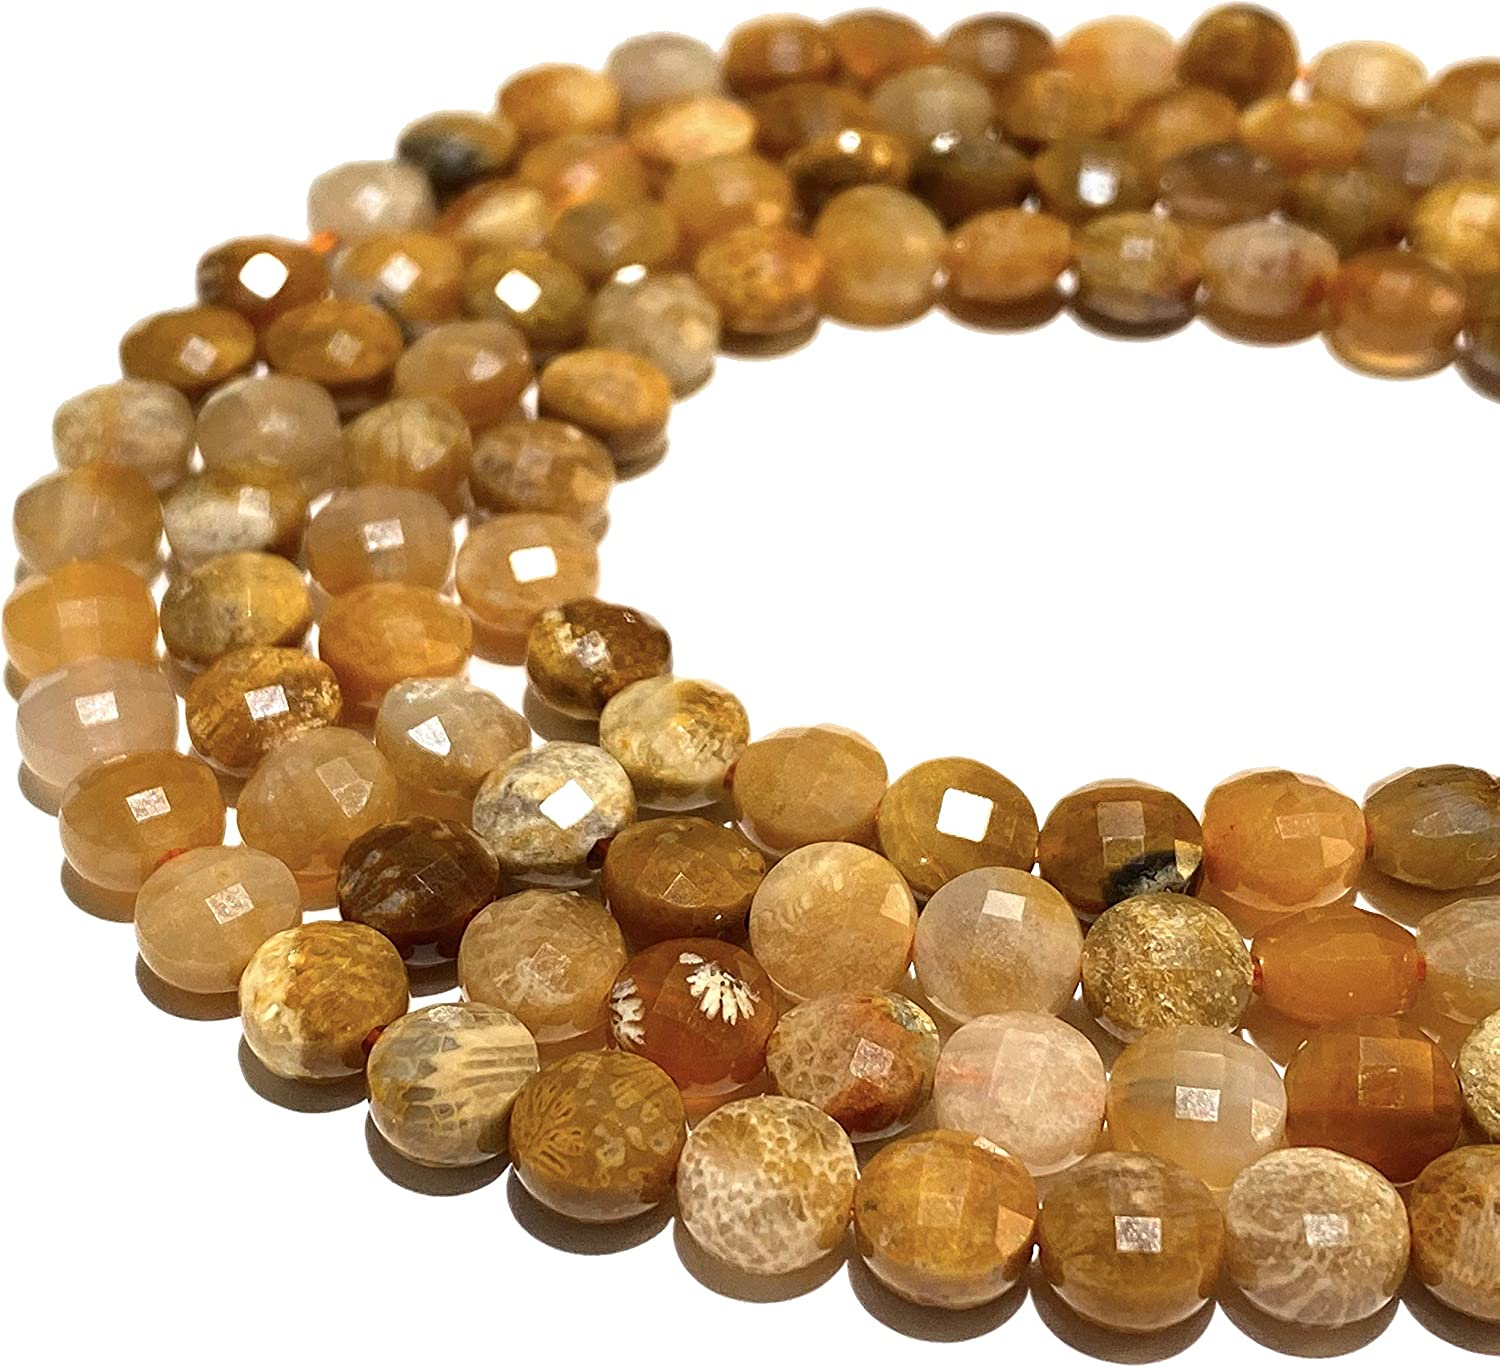 [ABCgems] Indonesian Honey Fossil Coral (Exquisite Matrix) Tiny 6mm Micro-Faceted Diamond-Cut Checkerboard Coin Beads (A Revolutionary Cutting Process- More Surface to Reflect Light)